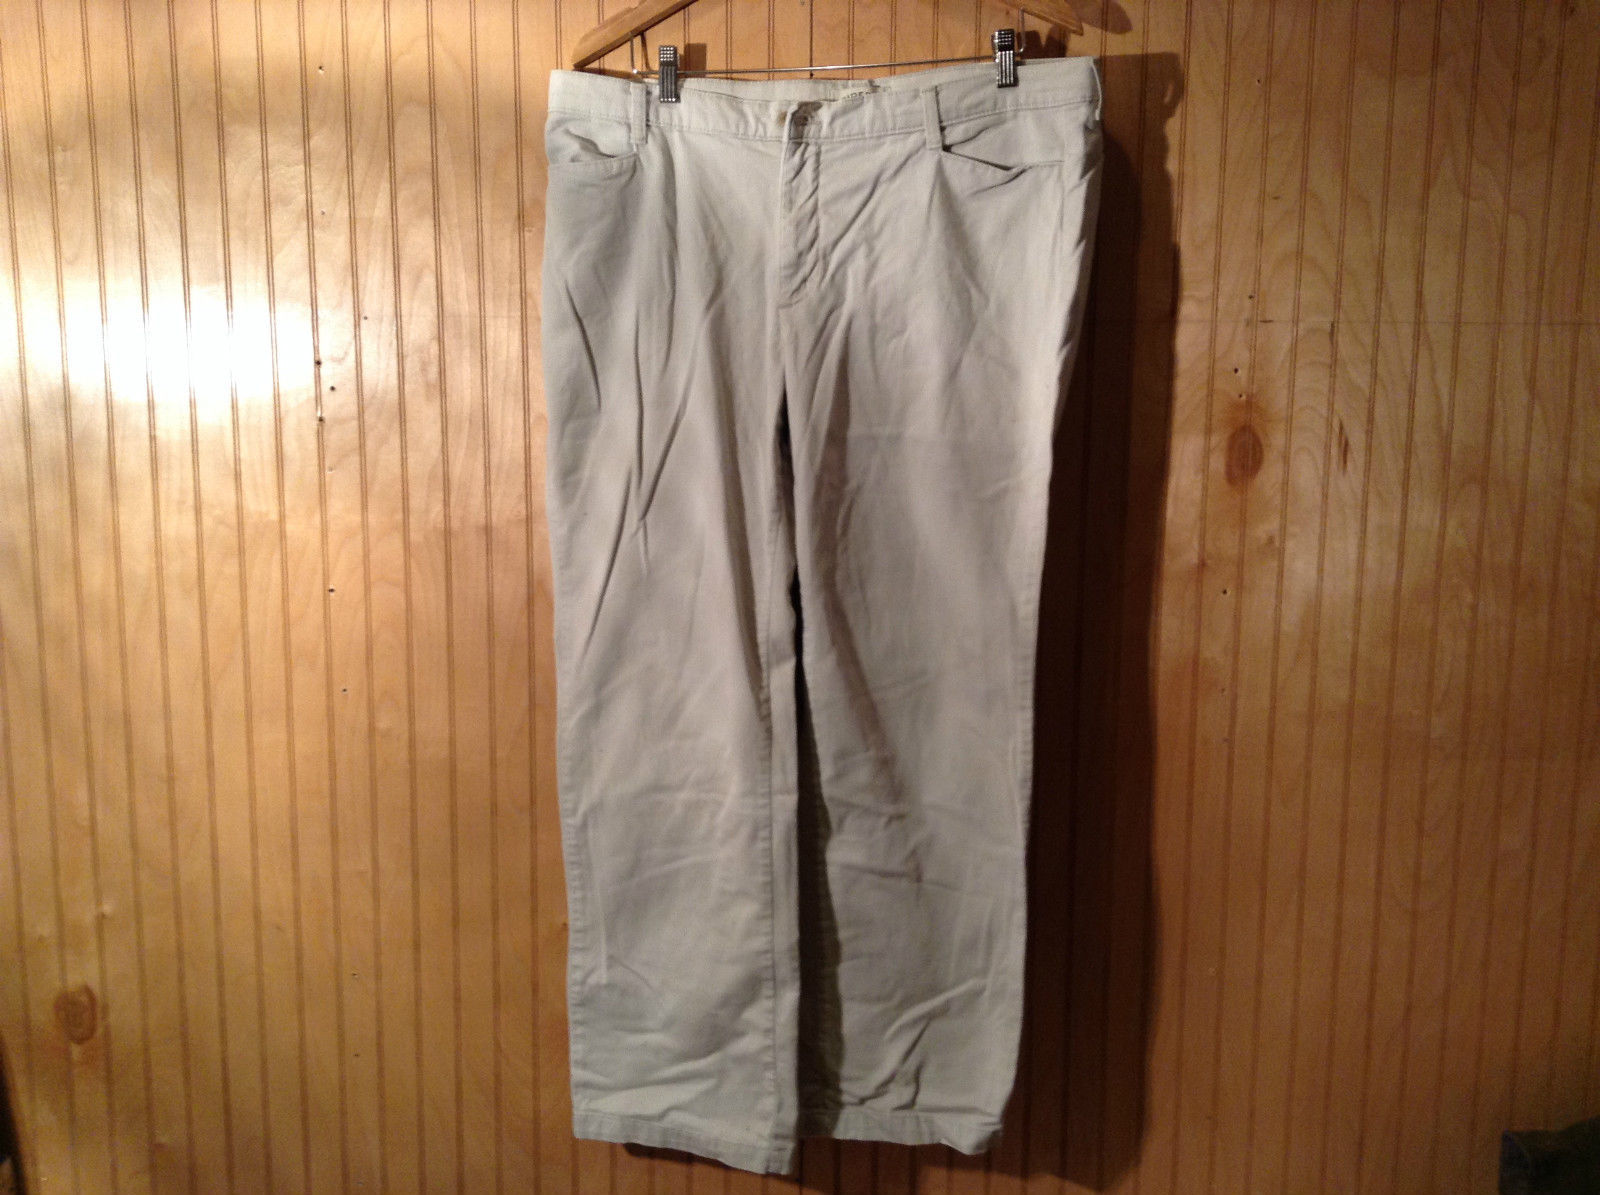 Size 18 Riders Khakis Casual Pants Front and Back Pockets Zipper Button Closure